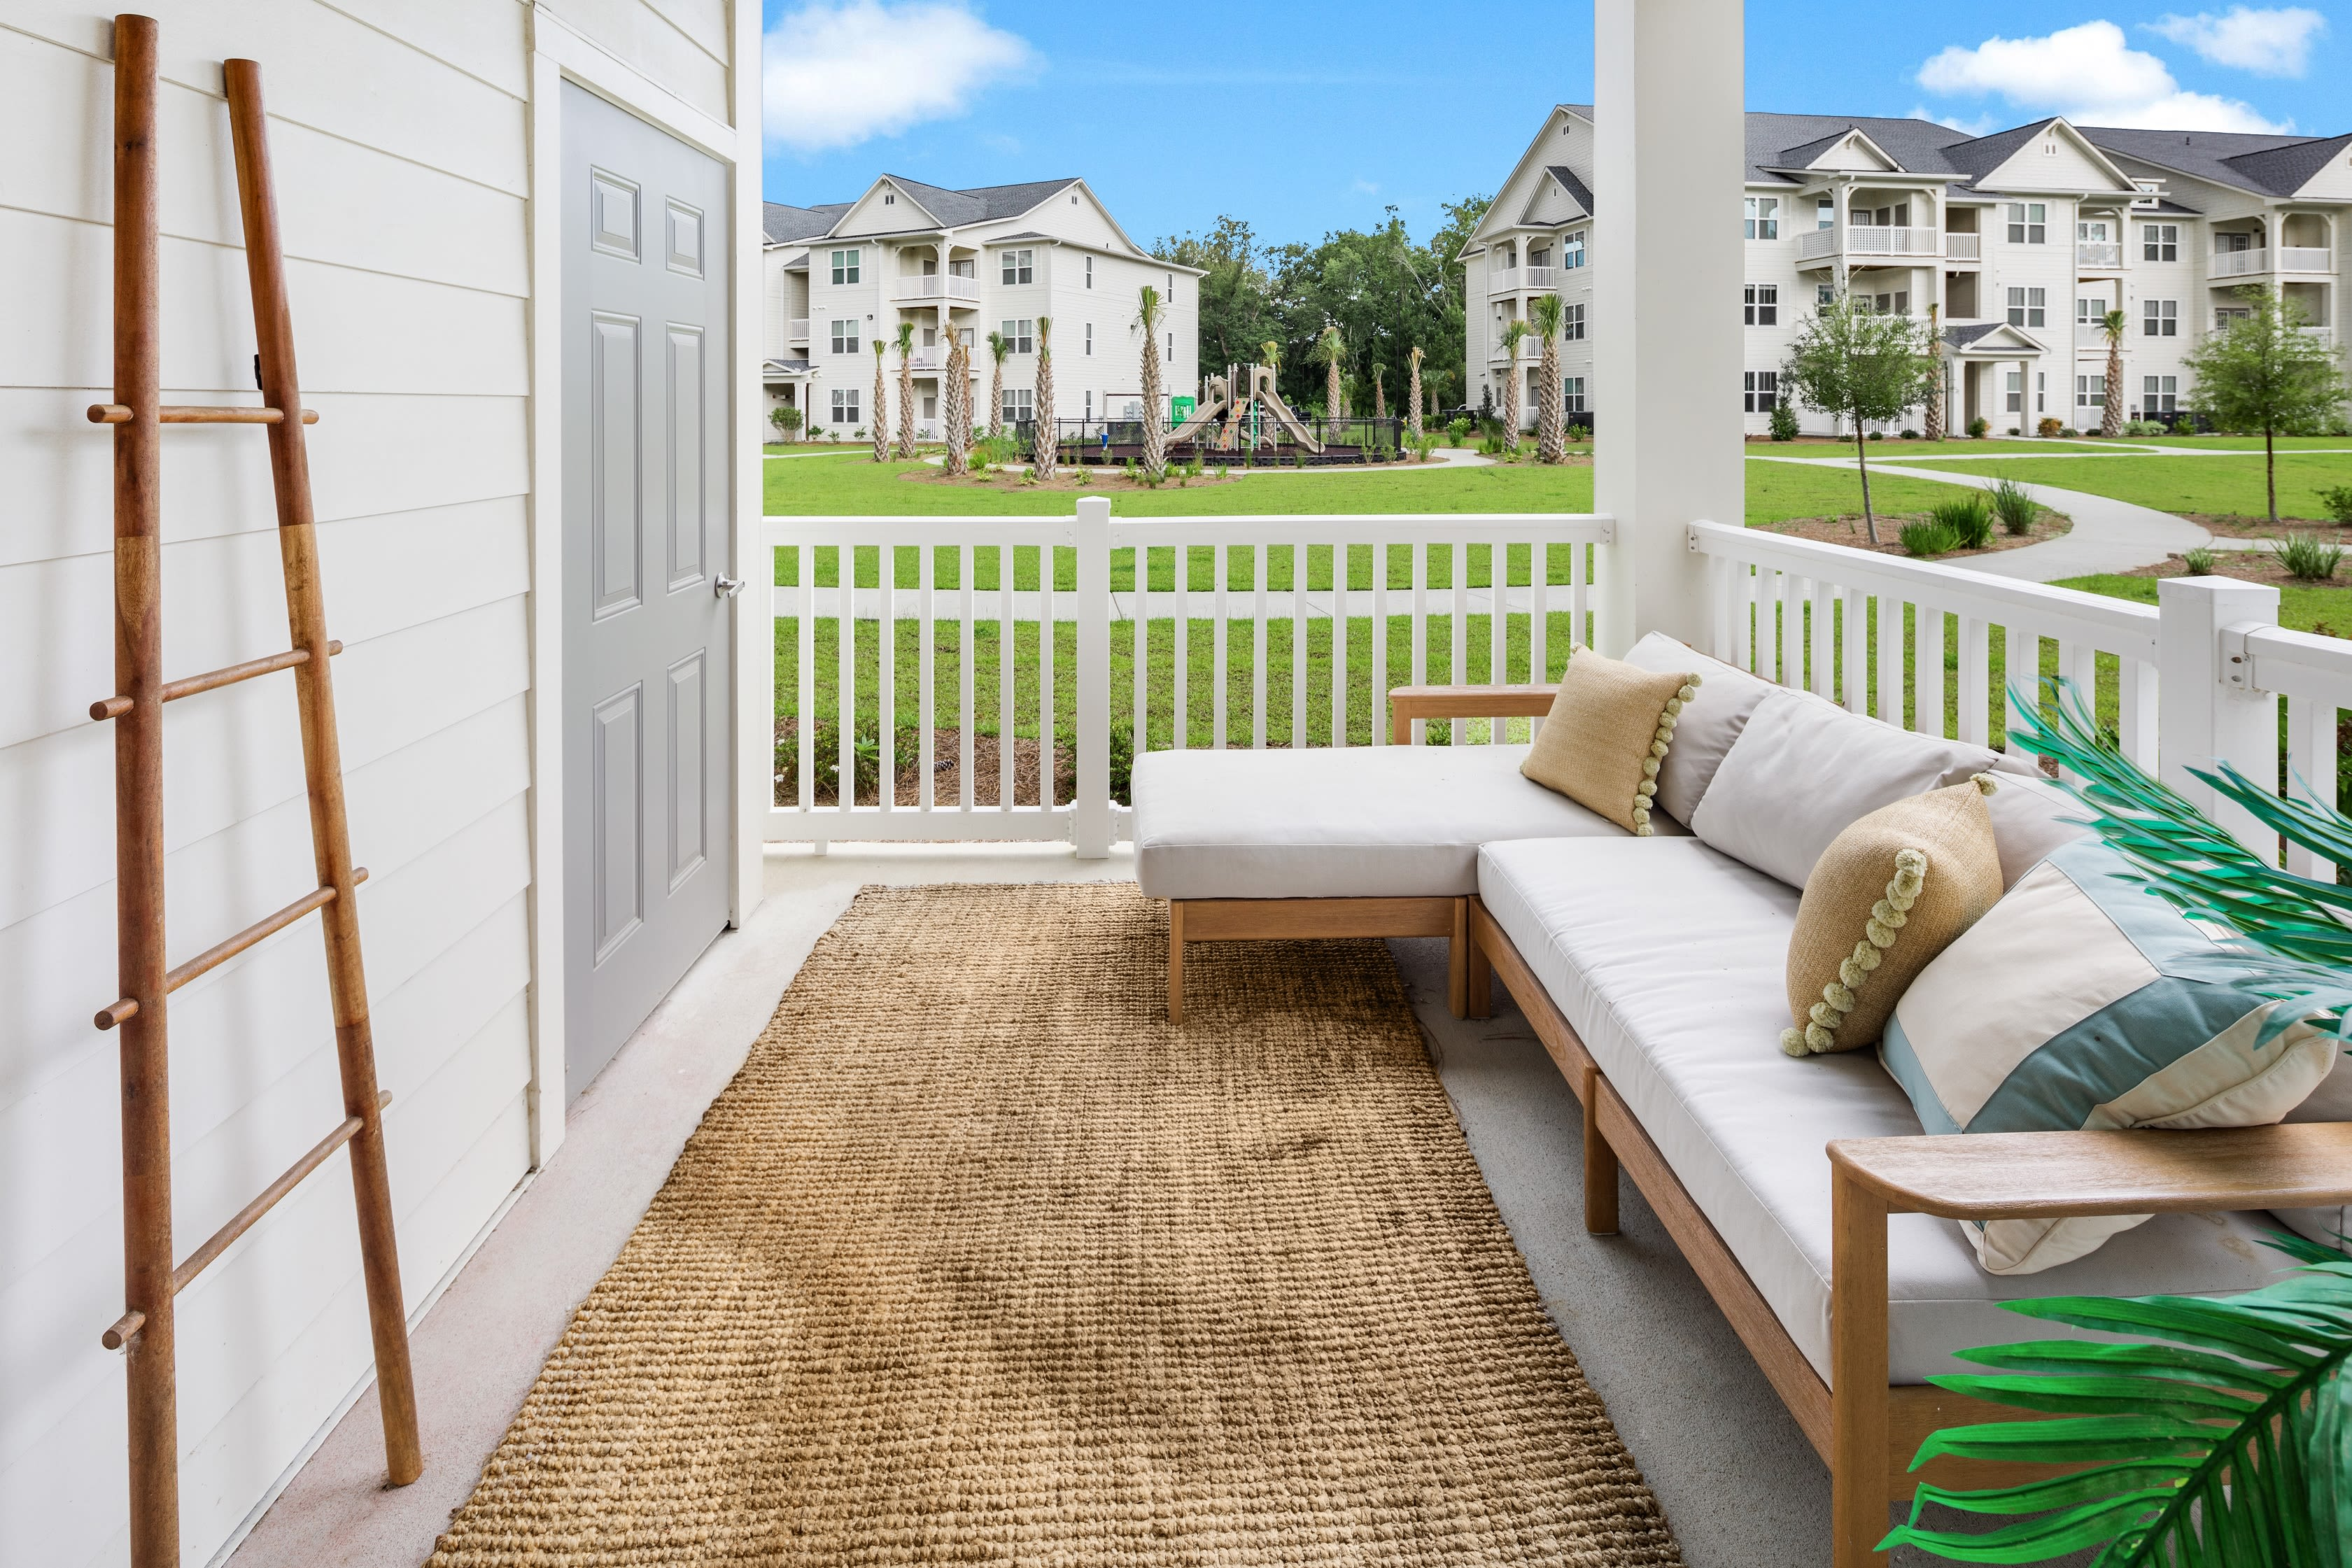 Outdoor sitting area at The Mason in Ladson, South Carolina